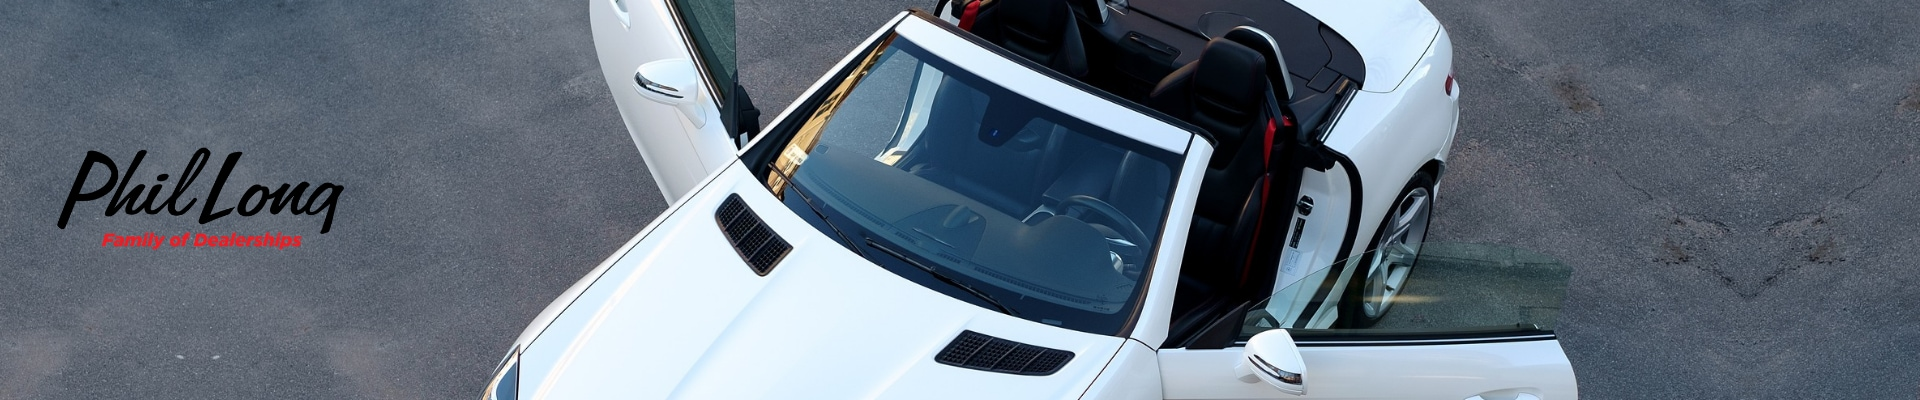 Bird eye view of a white used luxury car with both doors open inspecting the interior condition of the car